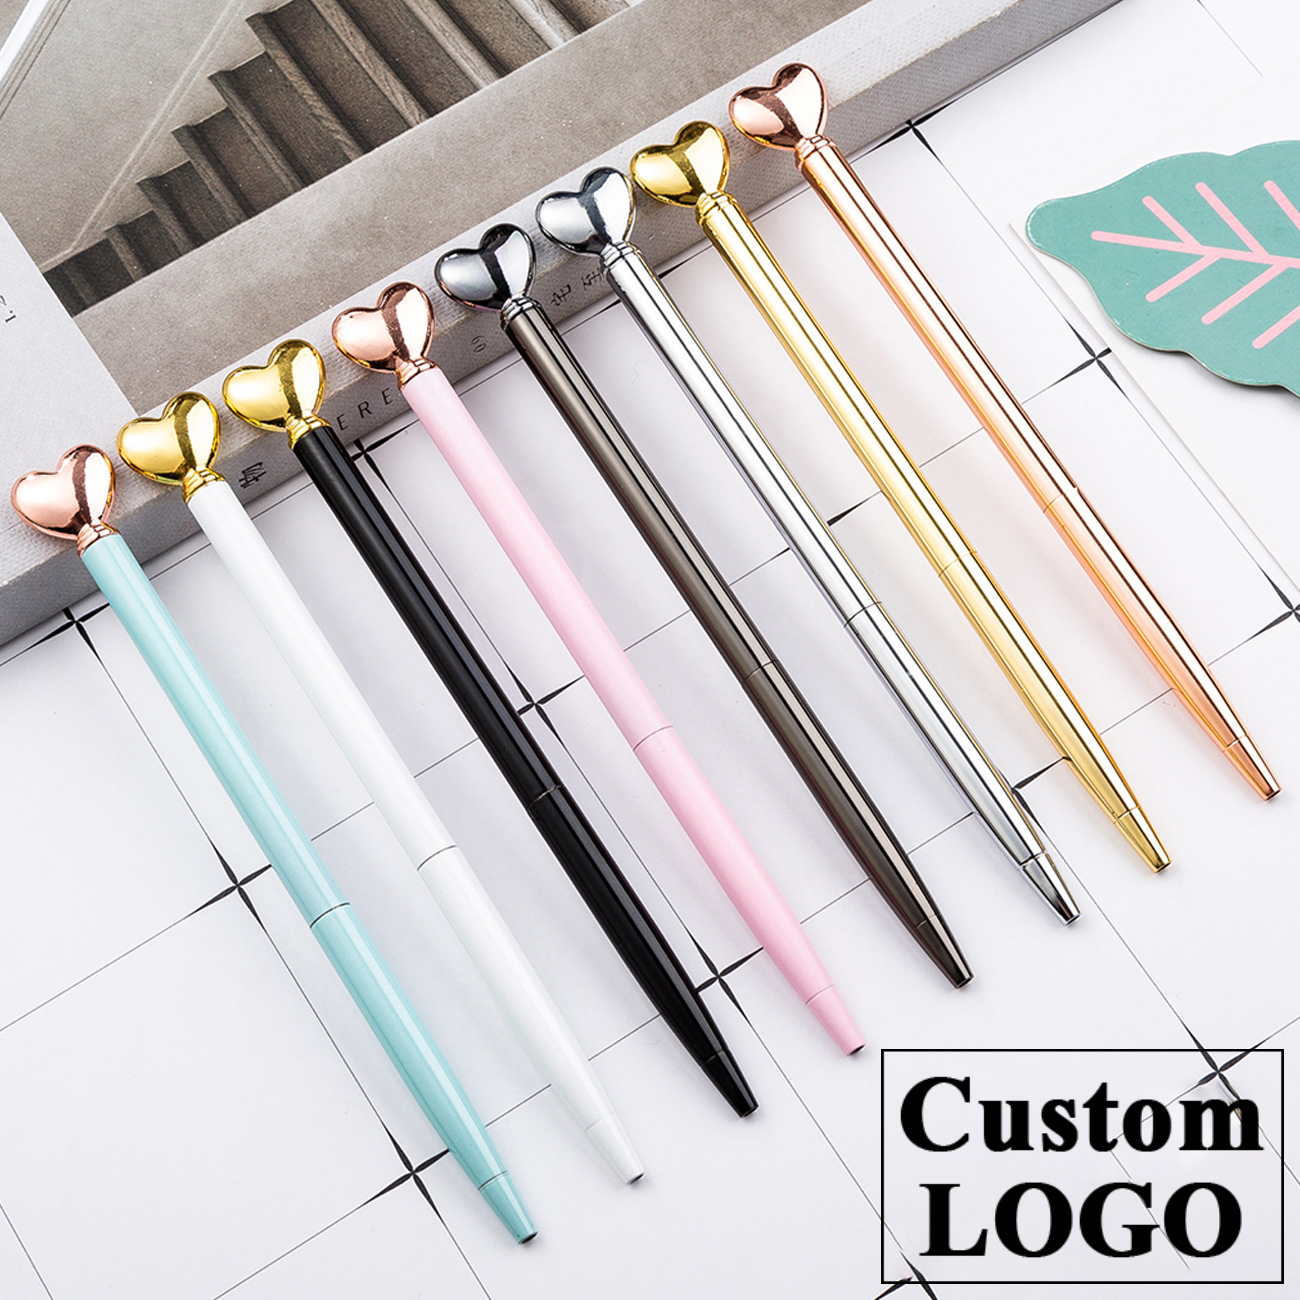 Metal Pen Love Shape Ballpoint Pen Gift Advertising Pen Wedding Gift Ballpoint Pen Novelty Pens Office&school Supply Custom LOGO